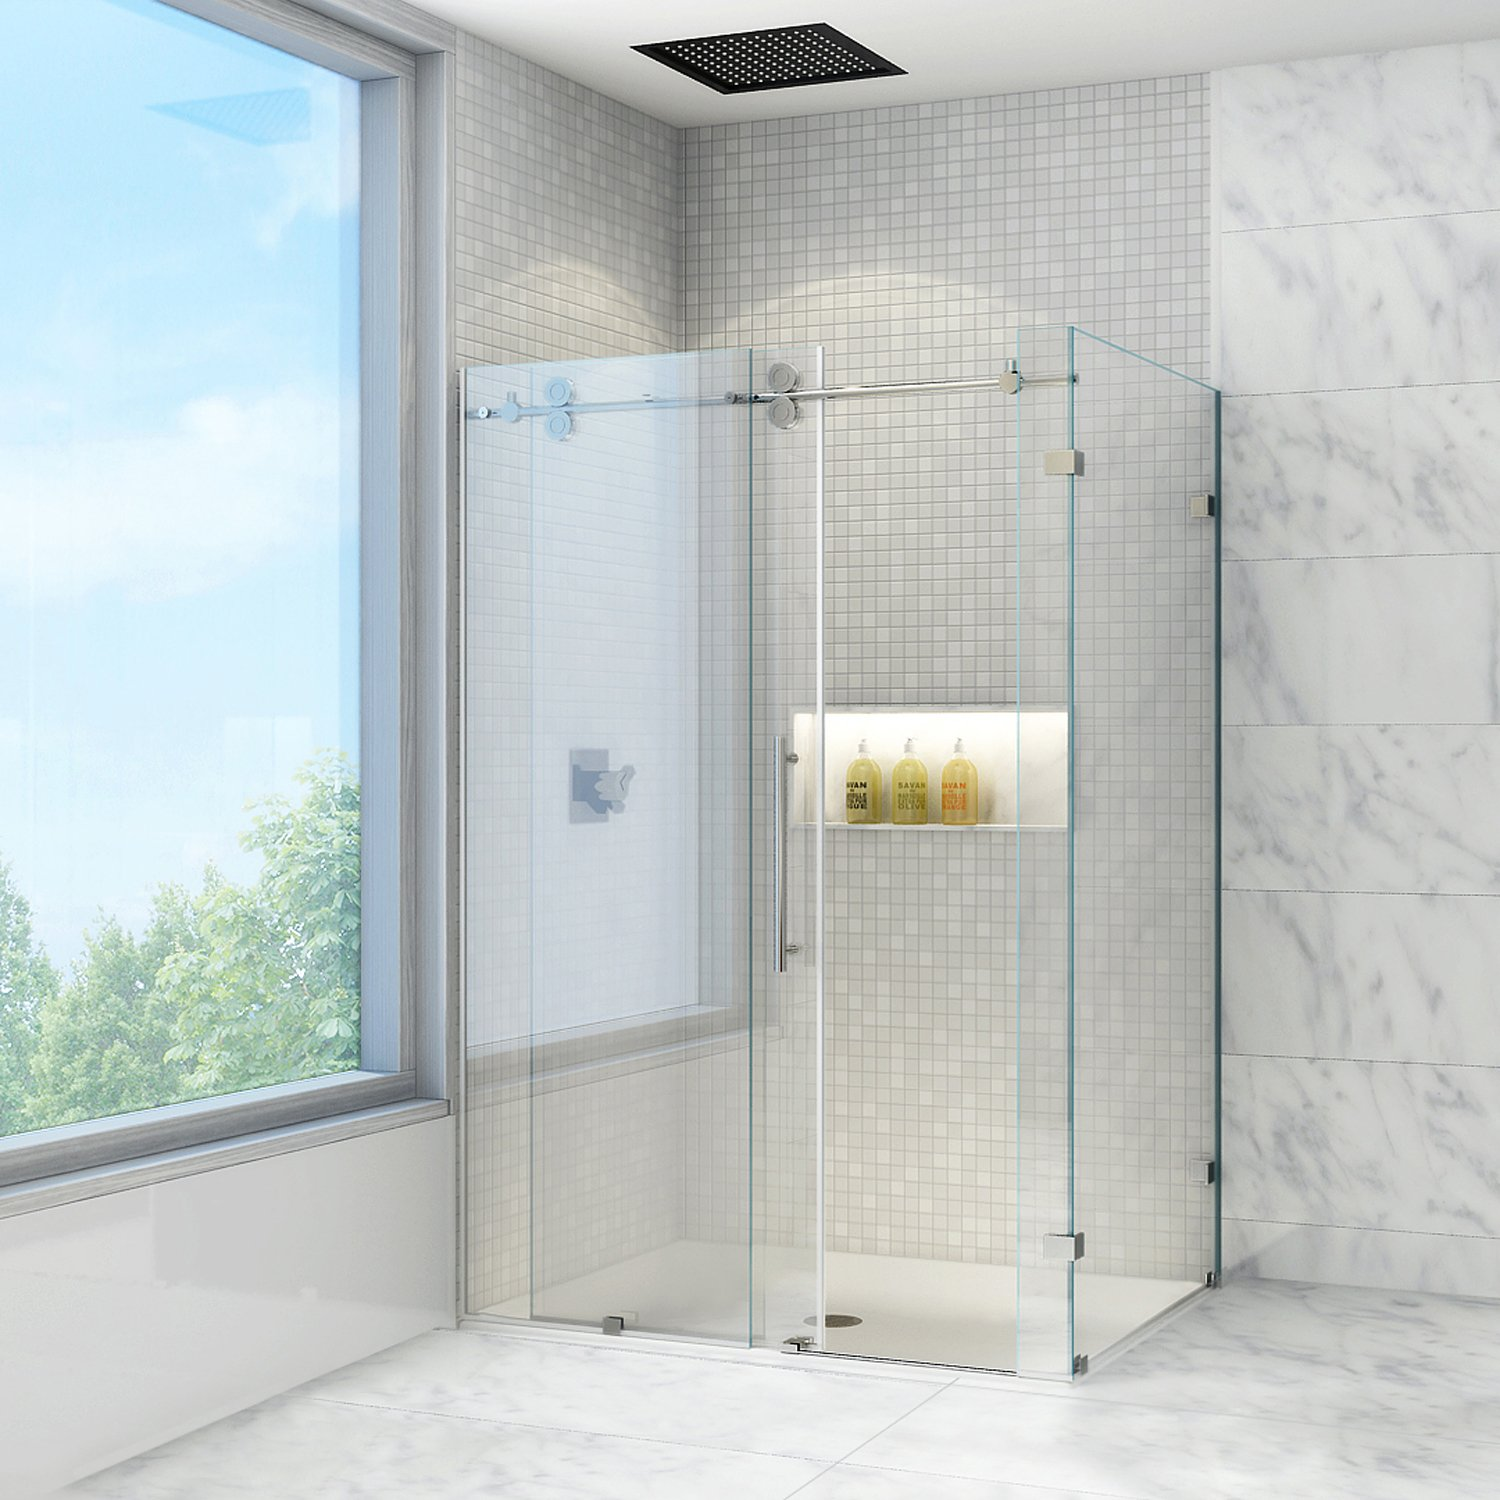 Vigo winslow 36 x 48 in frameless sliding shower enclosure with vigo winslow 36 x 48 in frameless sliding shower enclosure with 375 in clear glass and chrome hardware shower doors amazon eventshaper